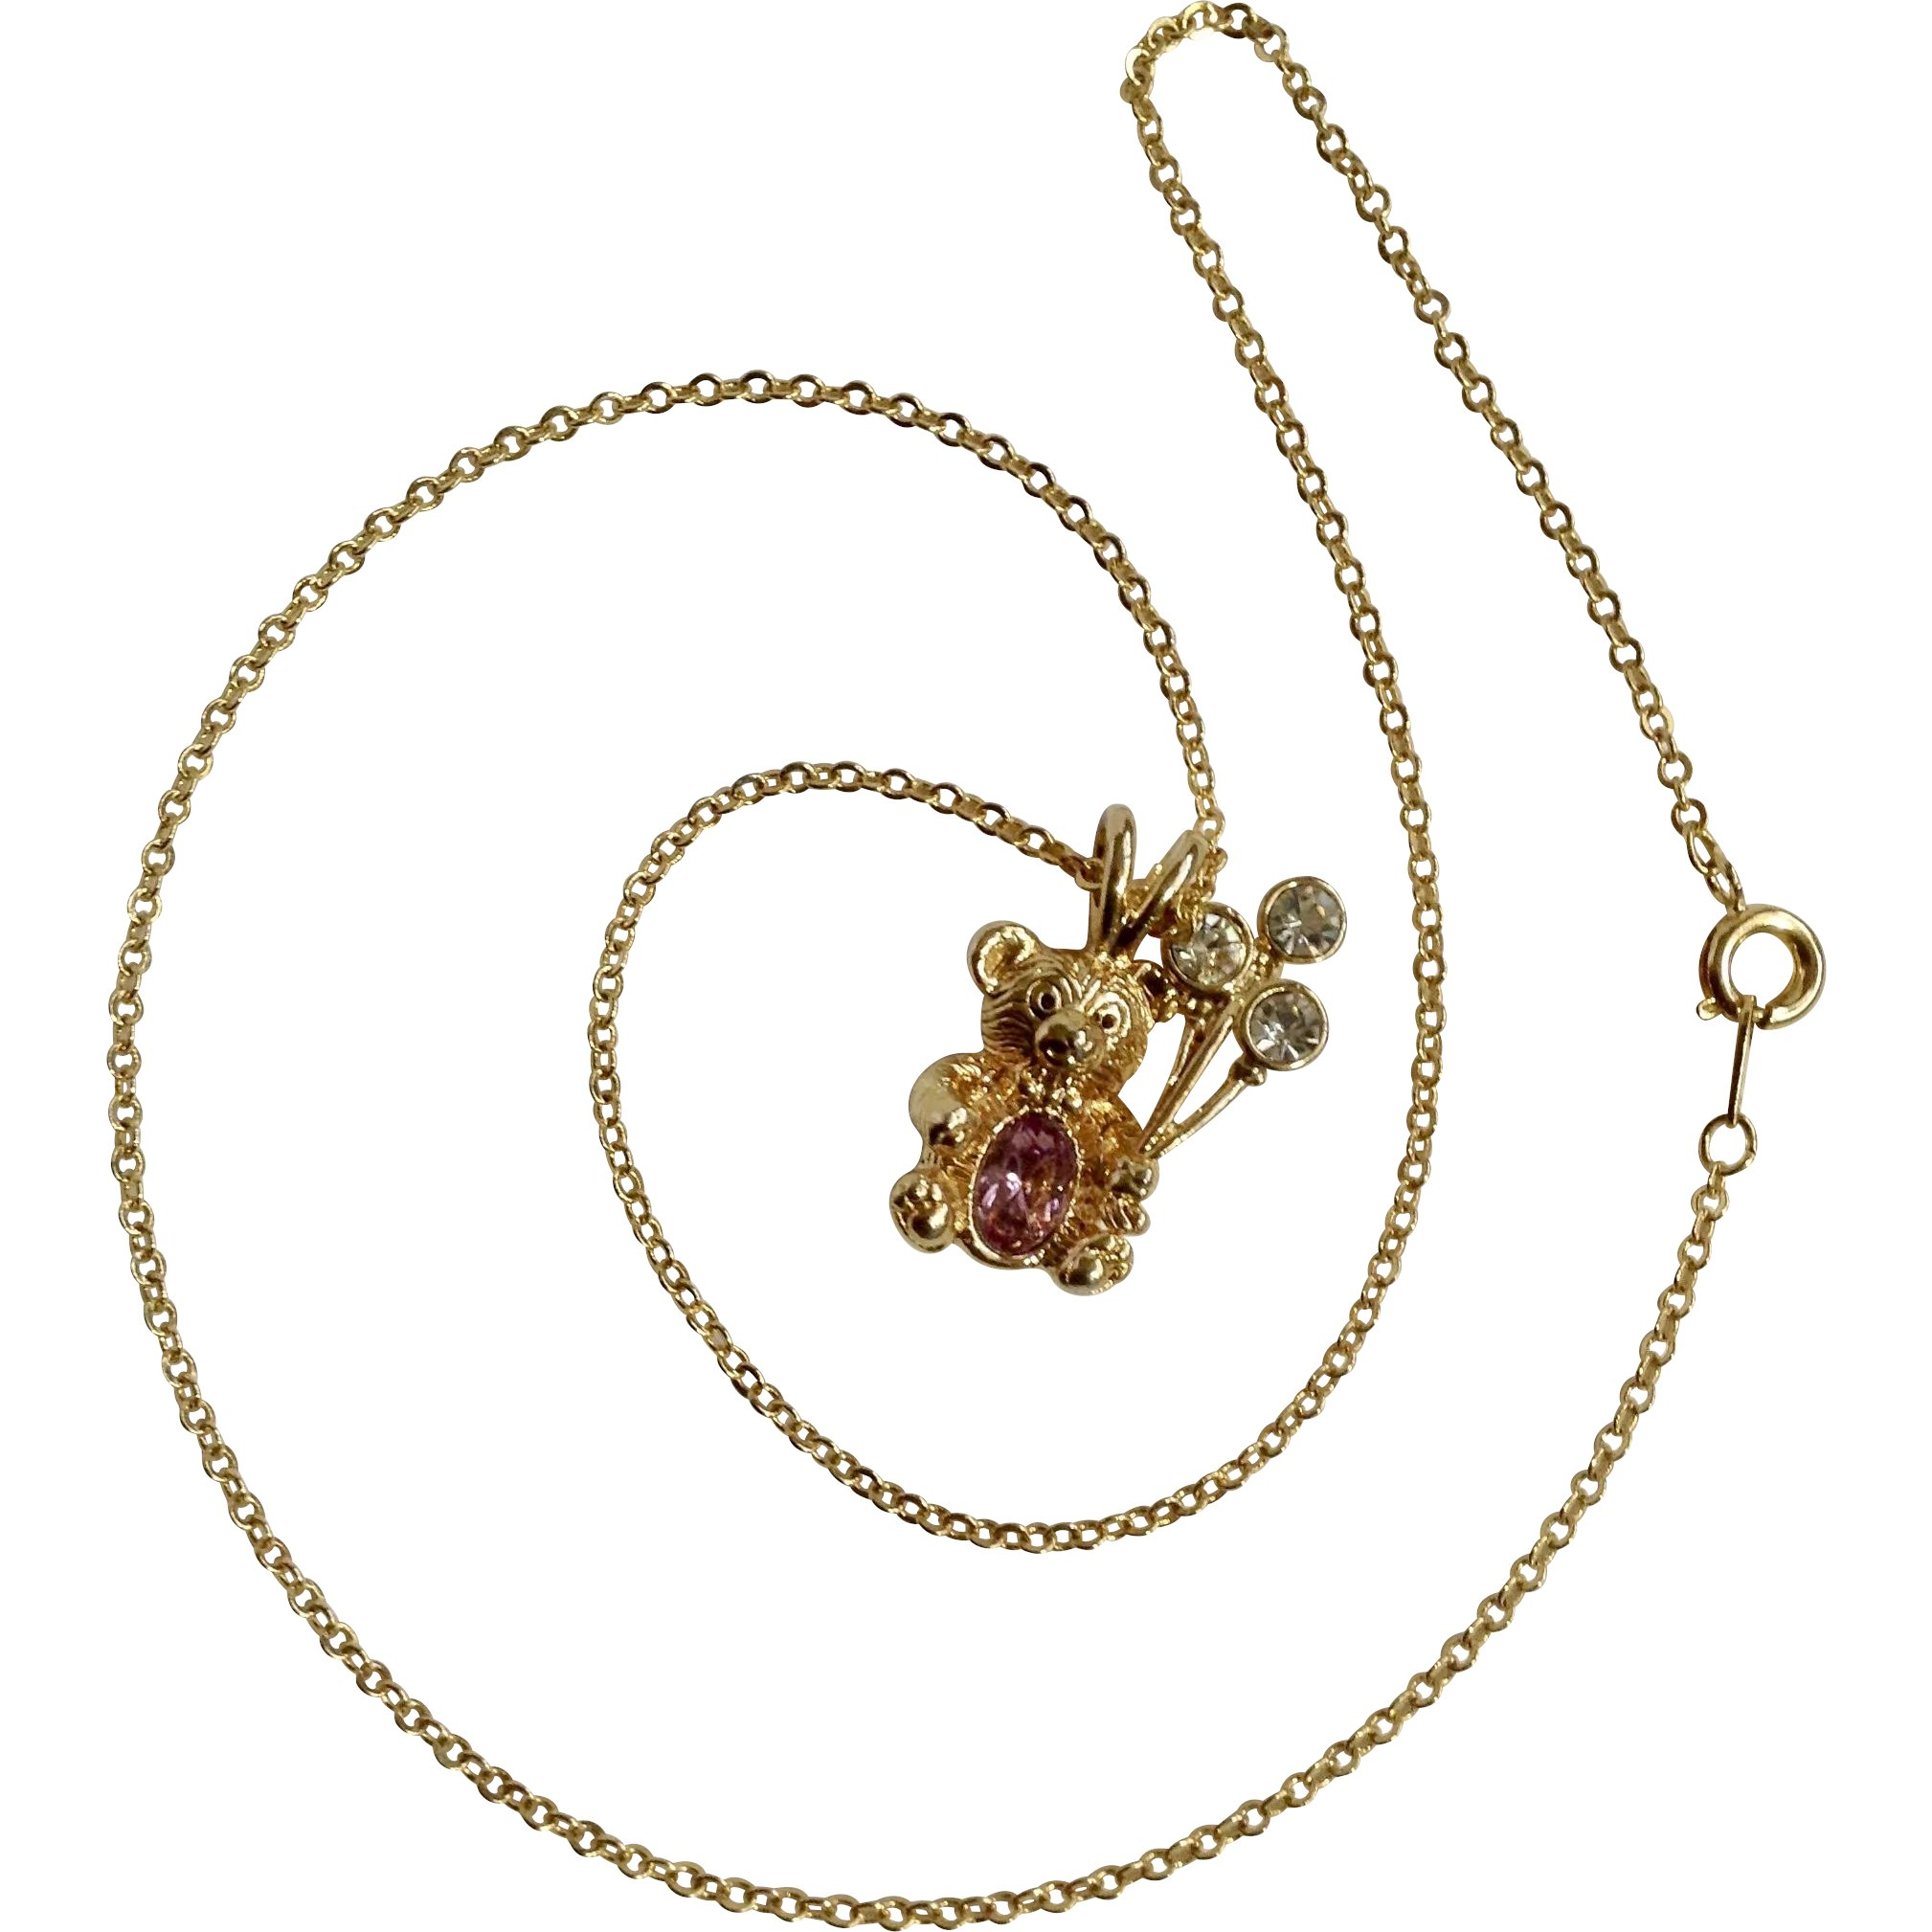 31mm x 25mm 925 Sterling Silver Yellow Gold-Plated Bear Hugs Charm Pendant with 2 Birthstones